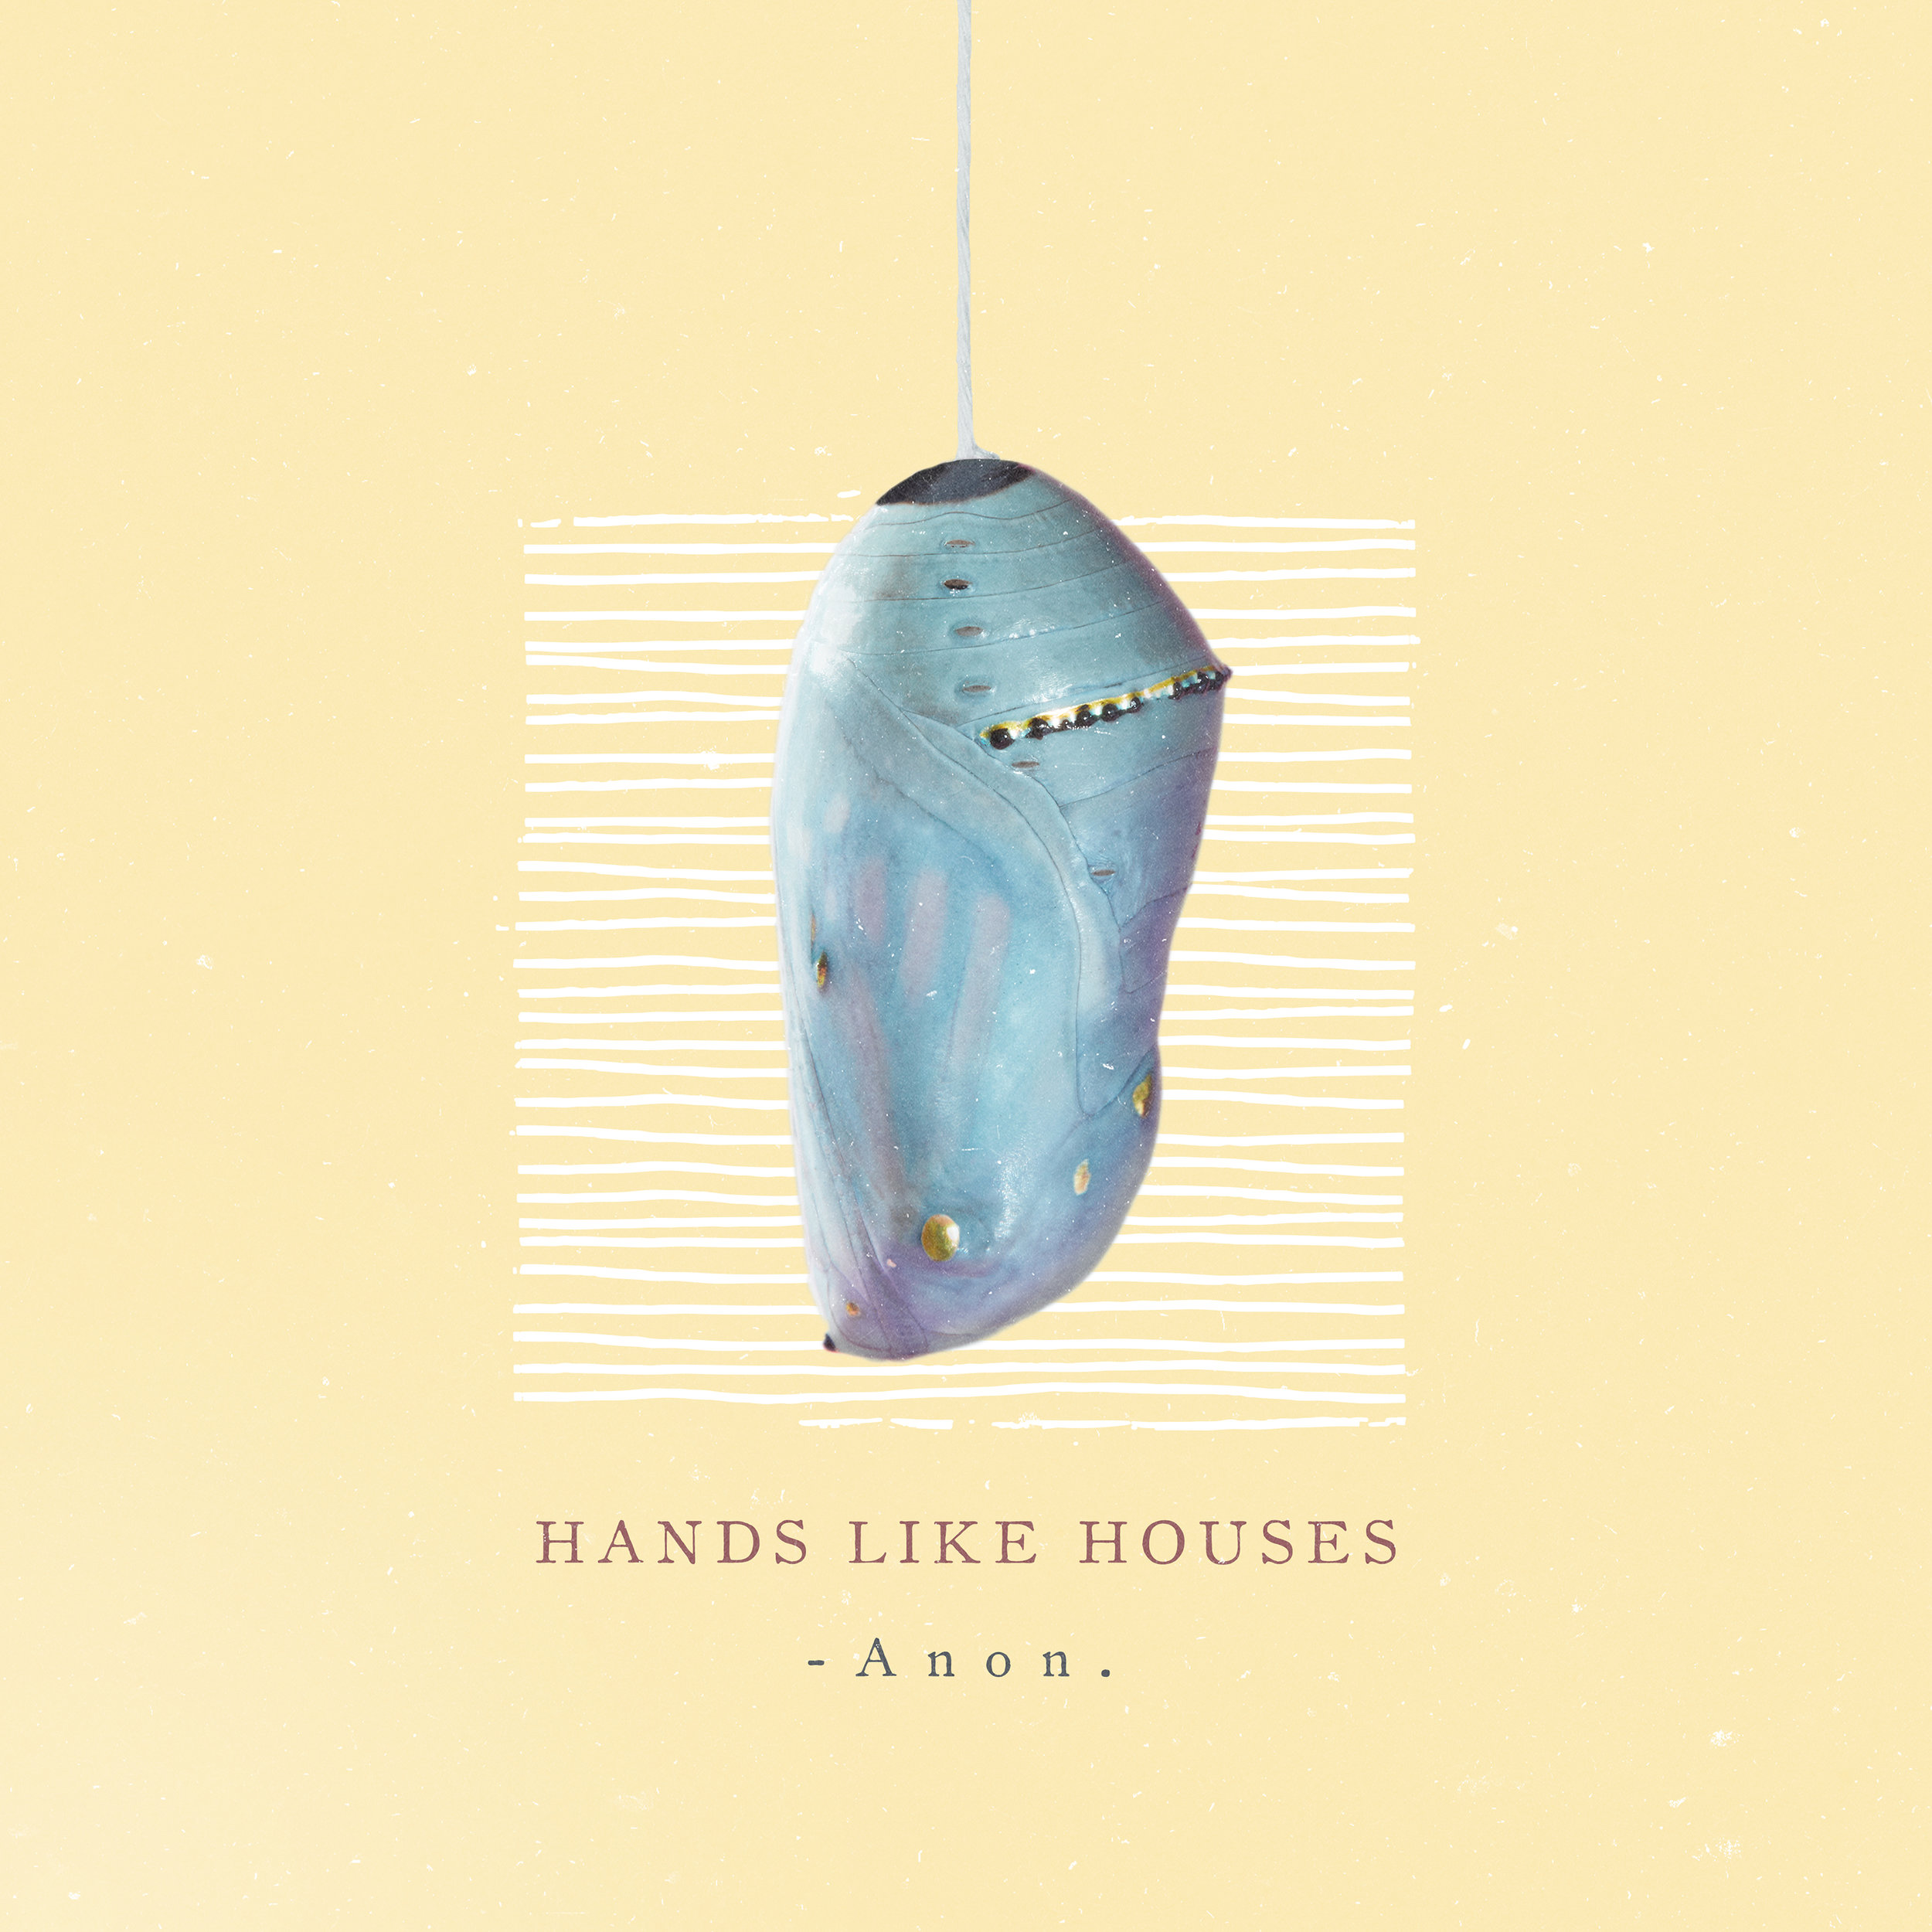 Hands Like Houses - -Anon.